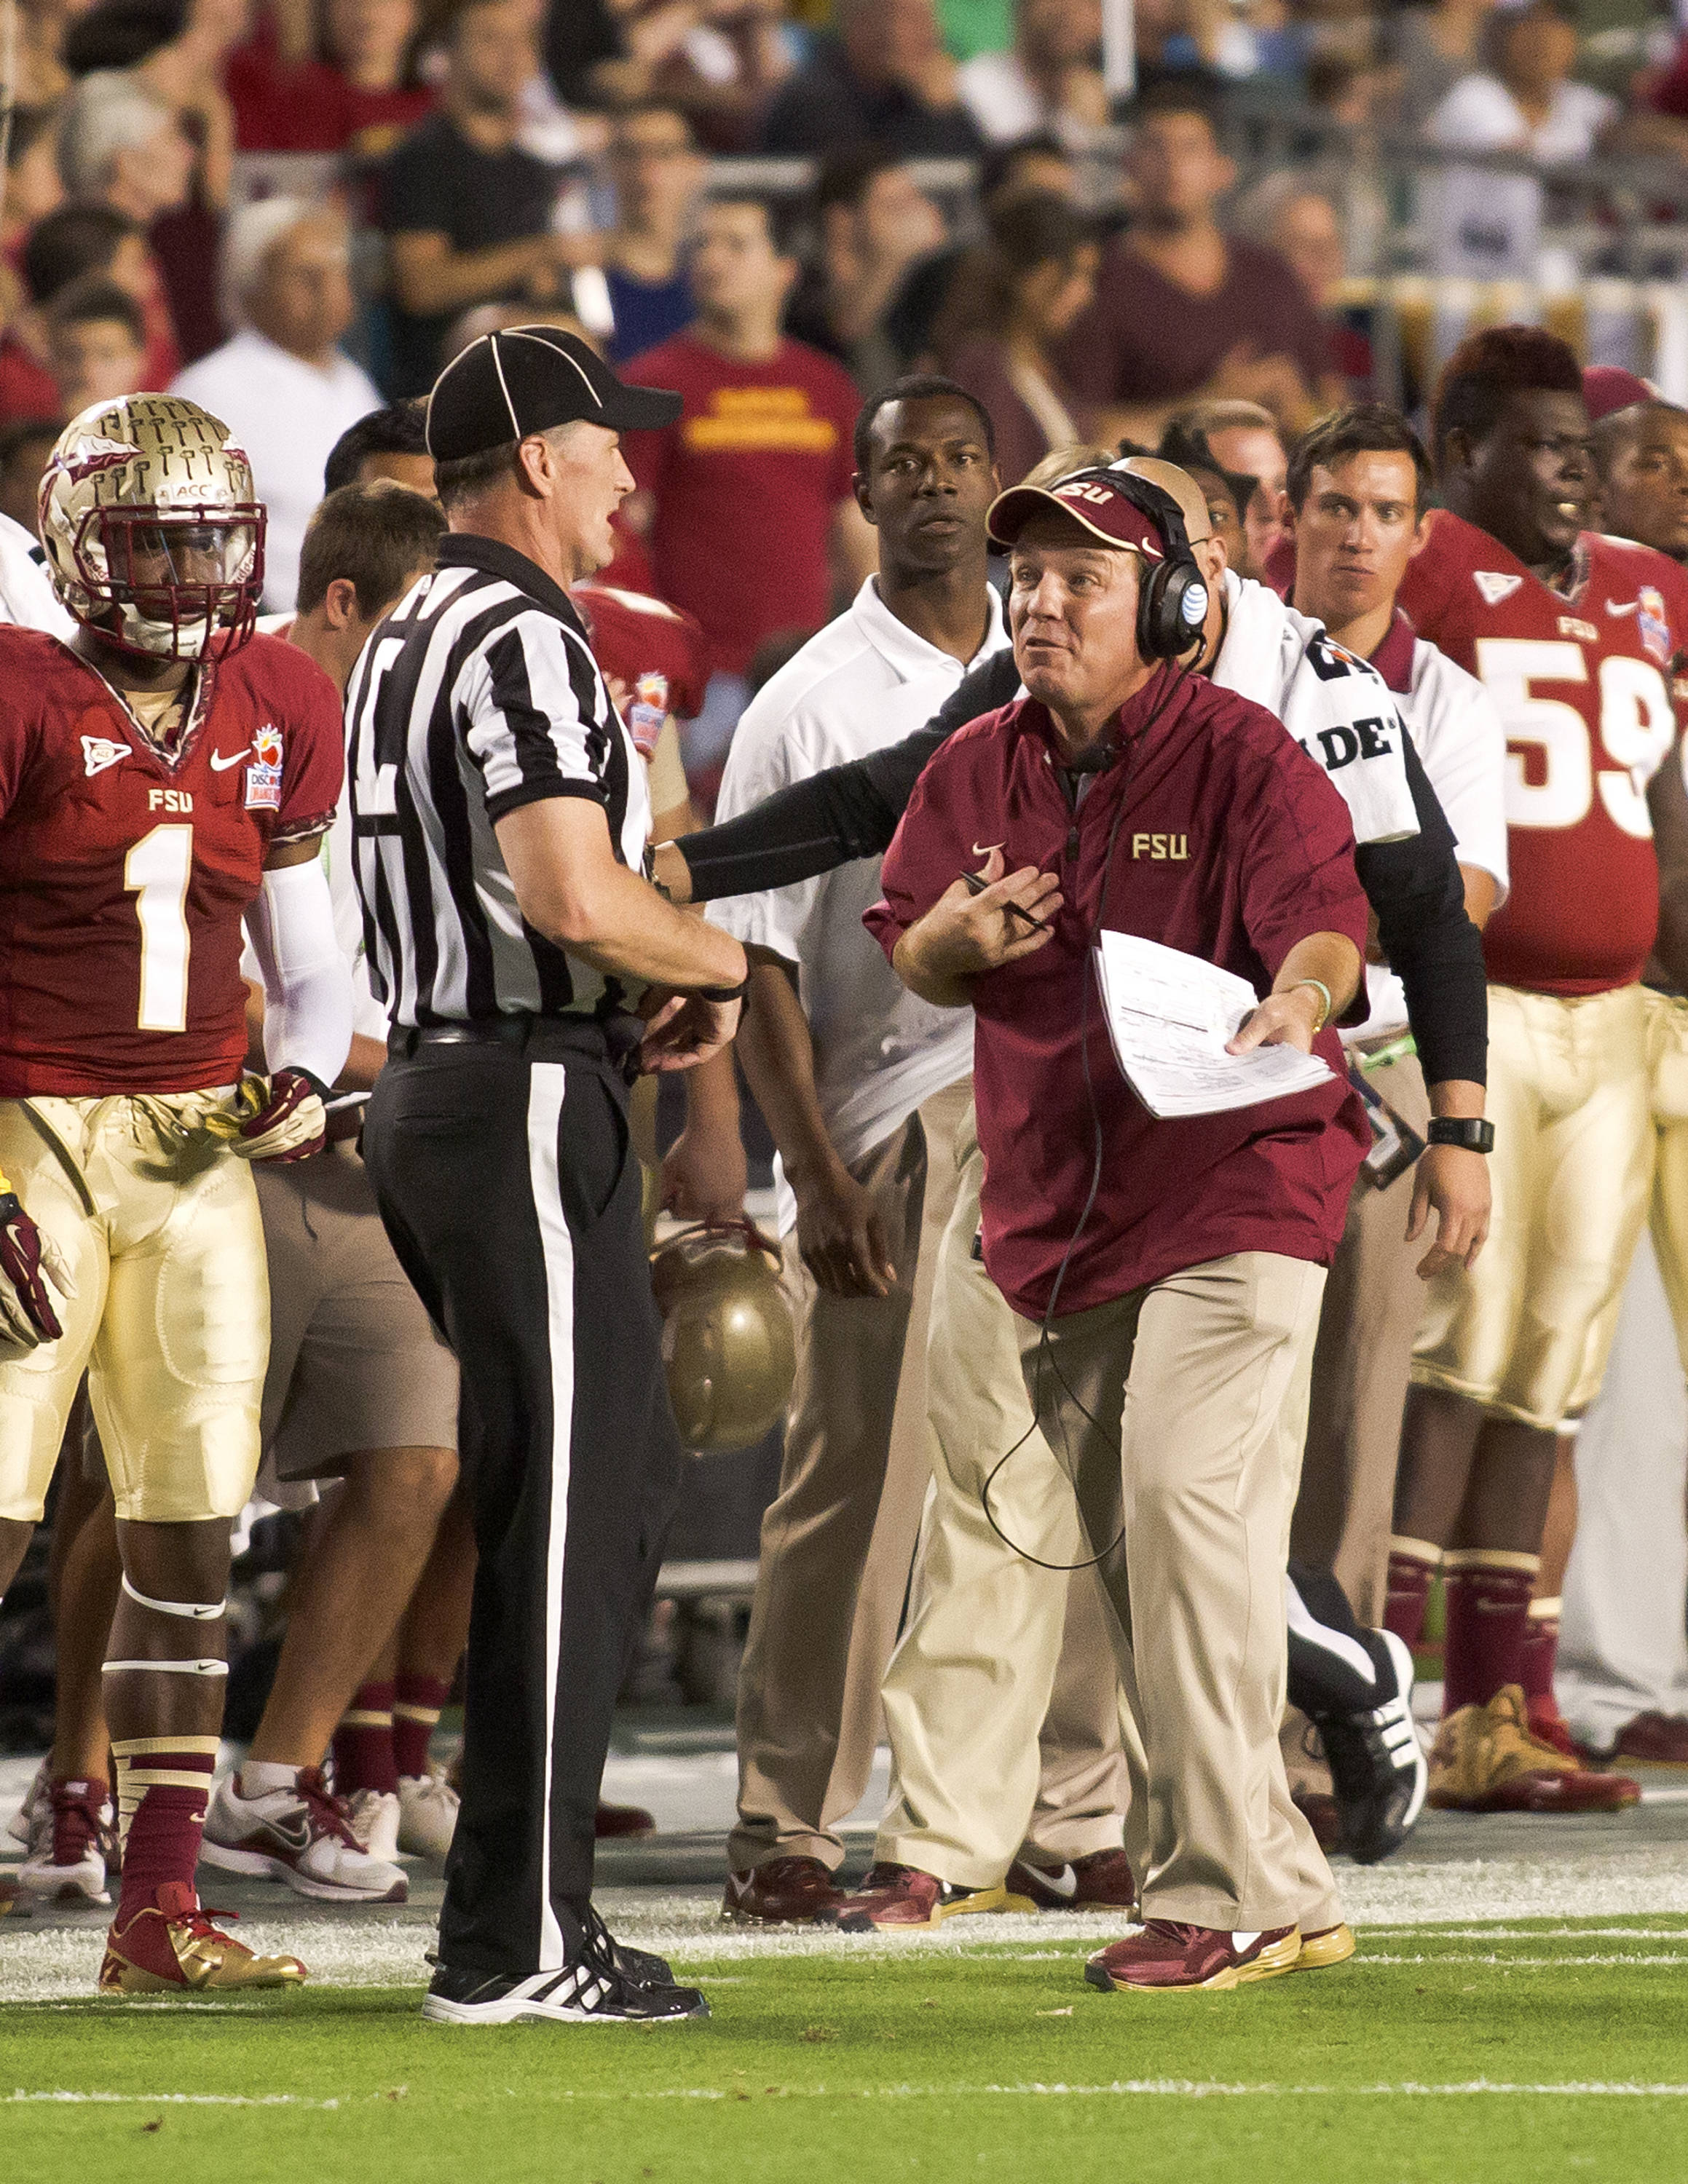 Head Coach Jimbo Fisher questioning a call, FSU vs No. Illinois, 01/01/13. (Photo by Steve Musco)